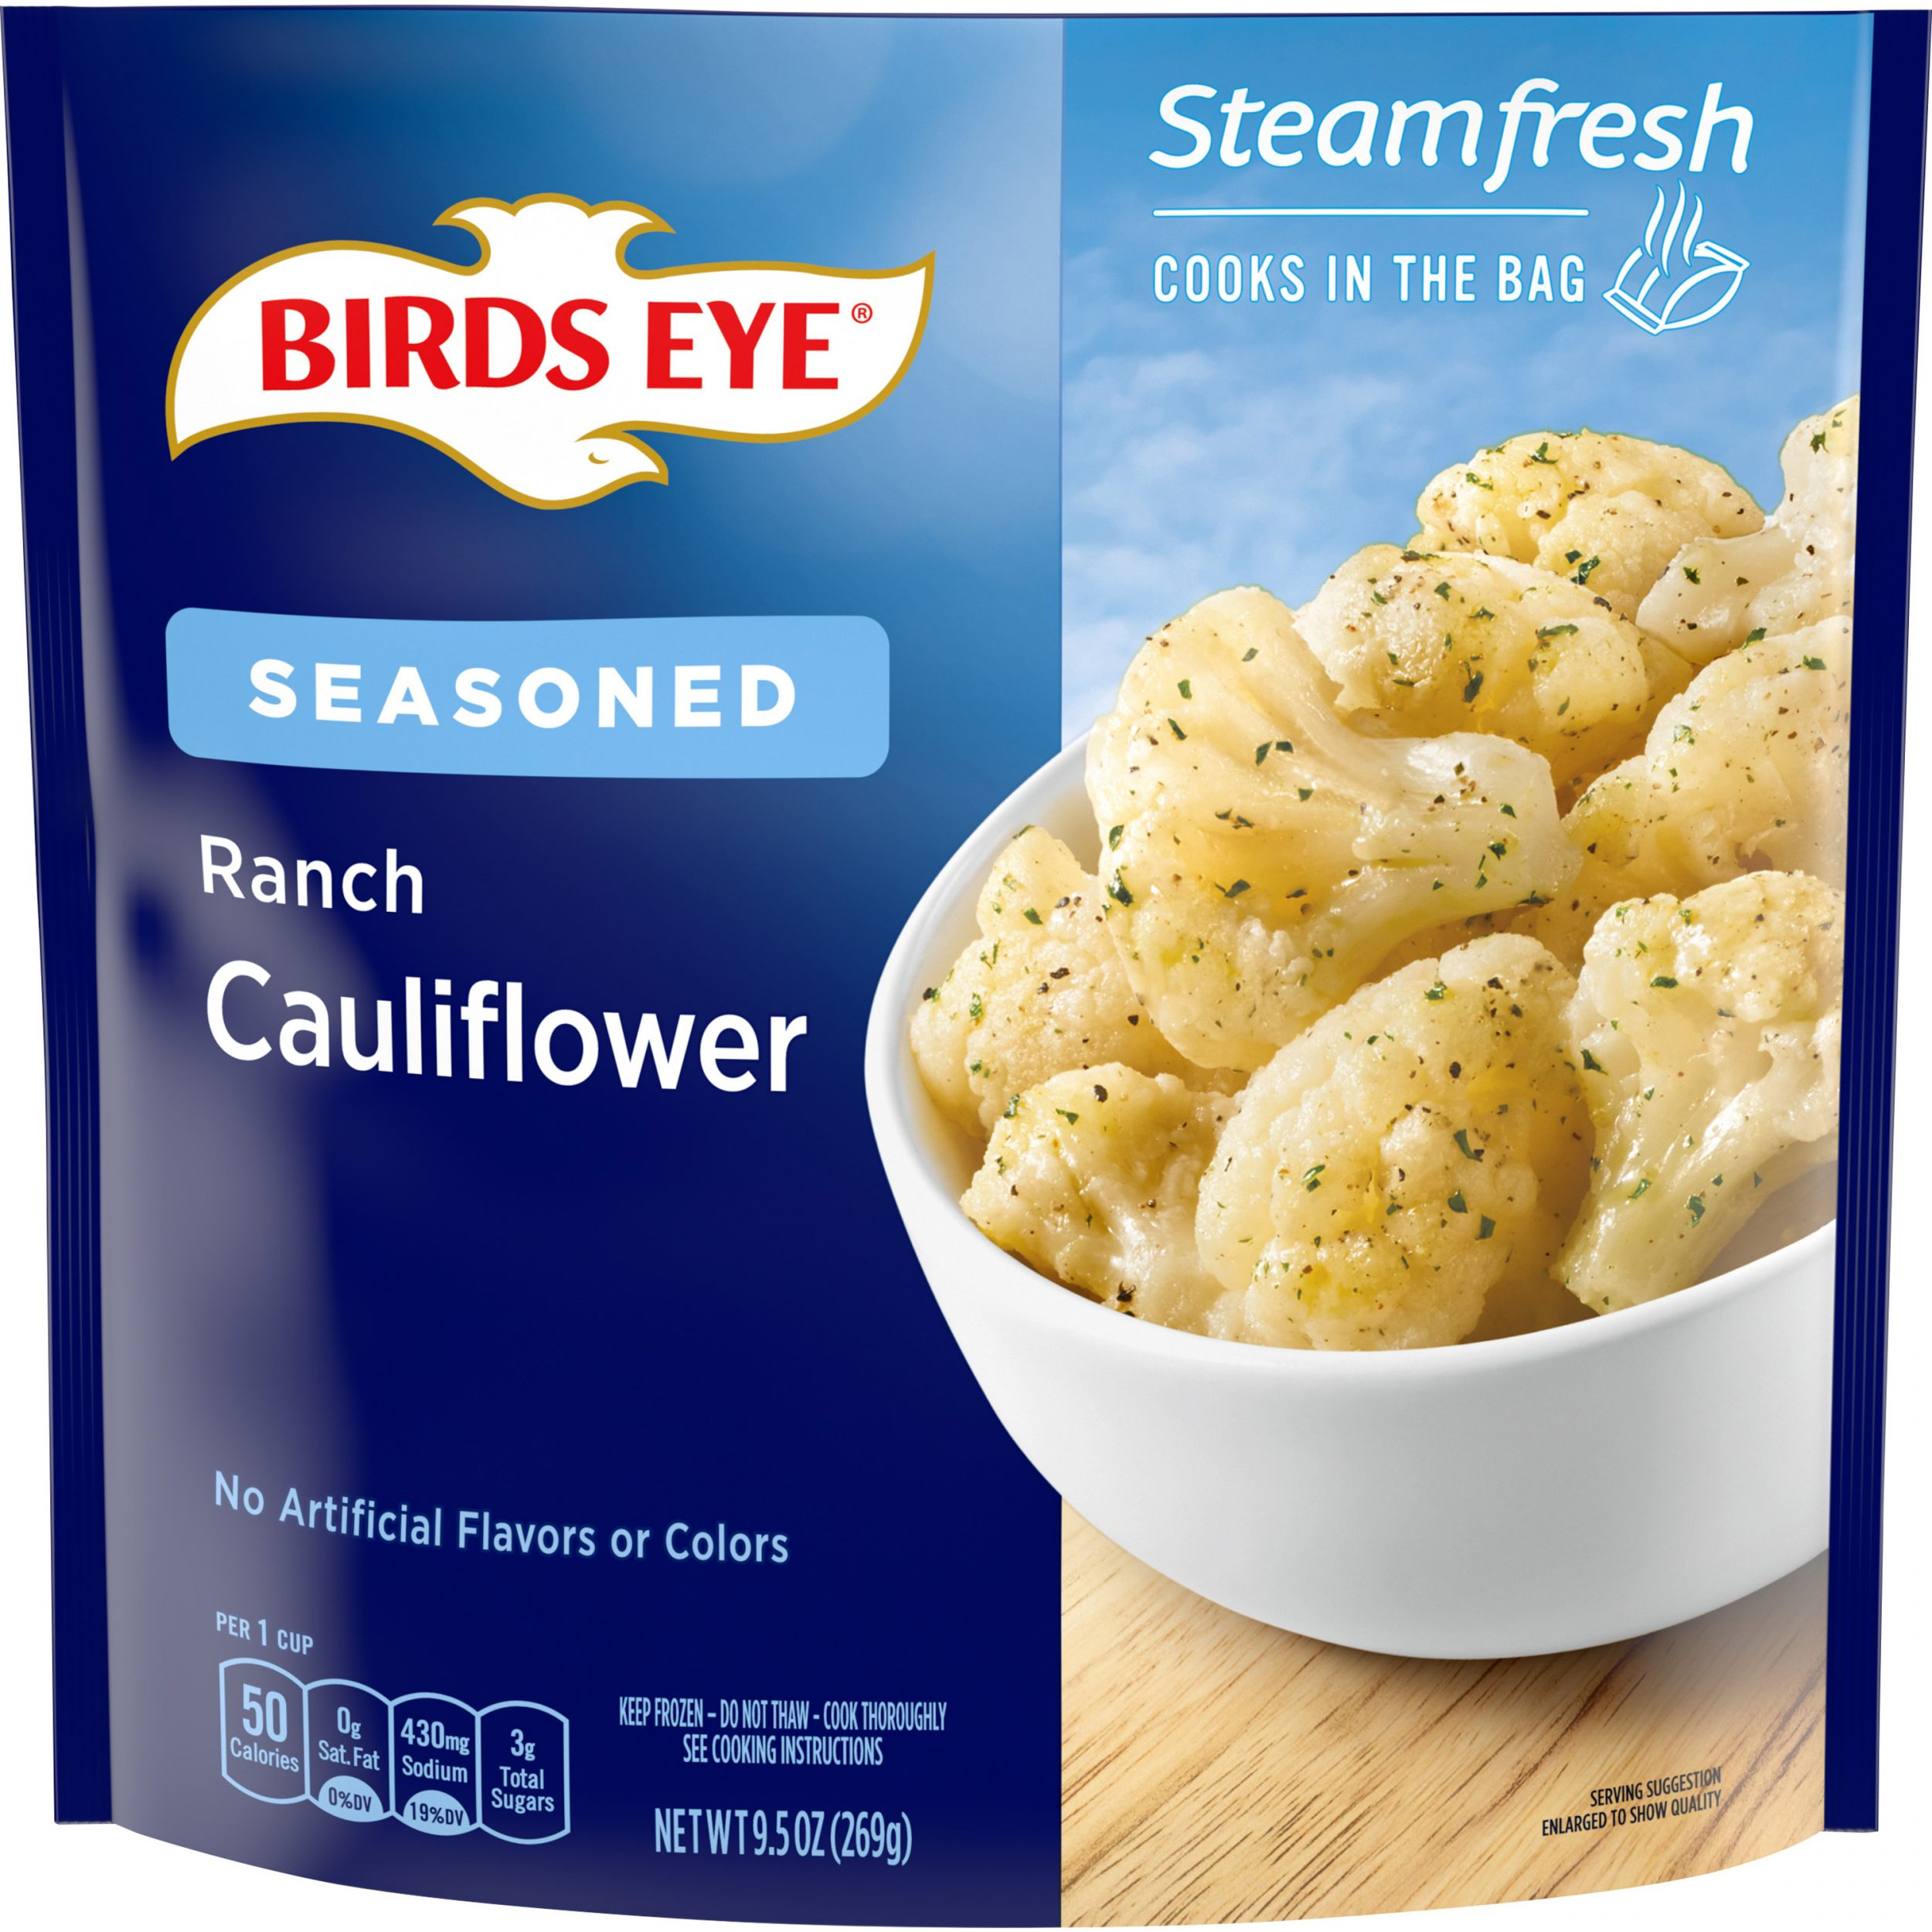 Birds Eye Steamfresh Flavor Full Ranch Cauliflower